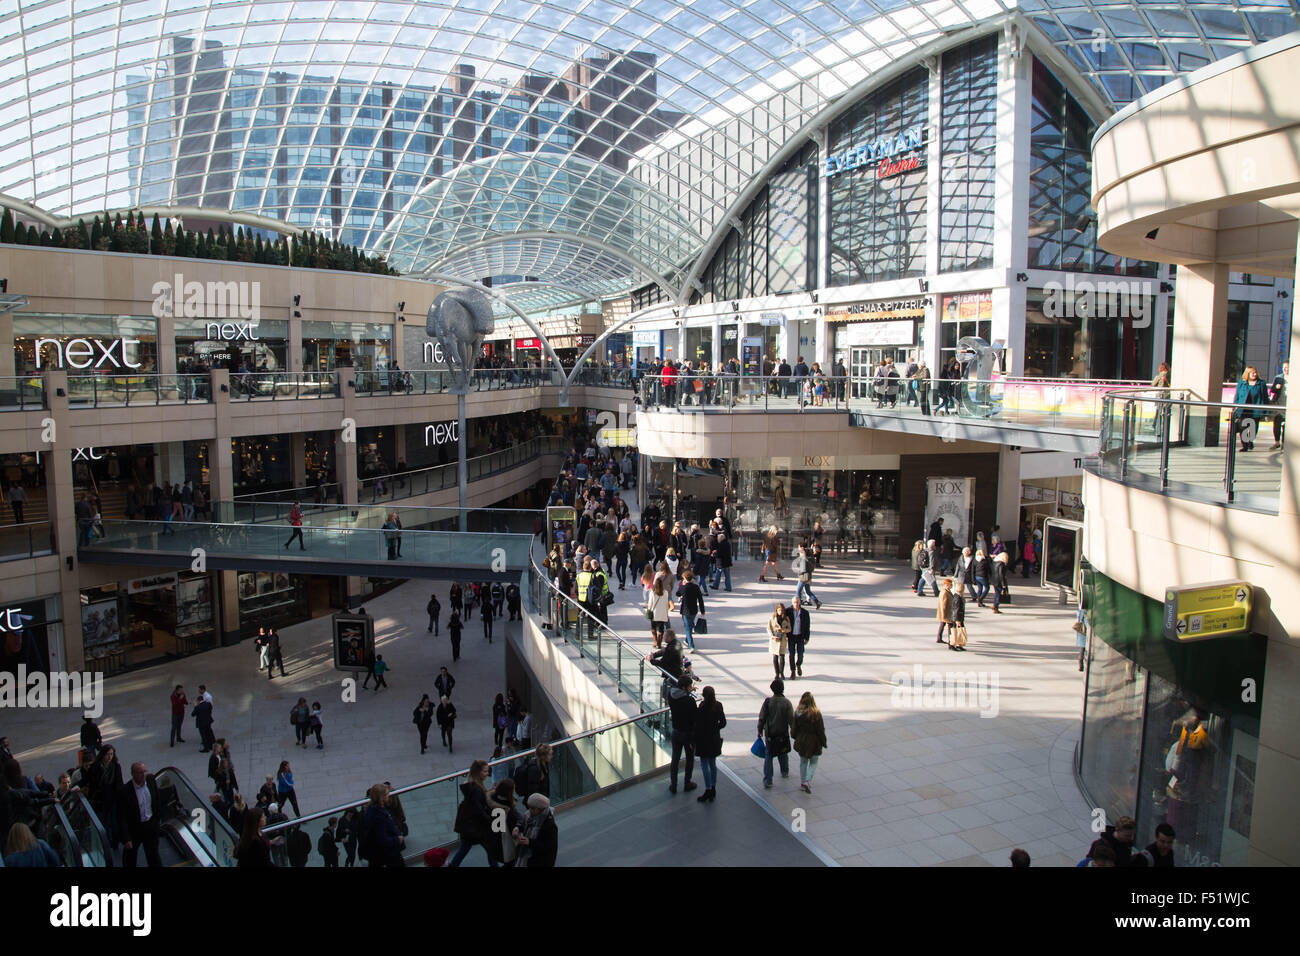 The Trinity Shopping Centre in Leeds, West Yorkshire, UK. - Stock Image